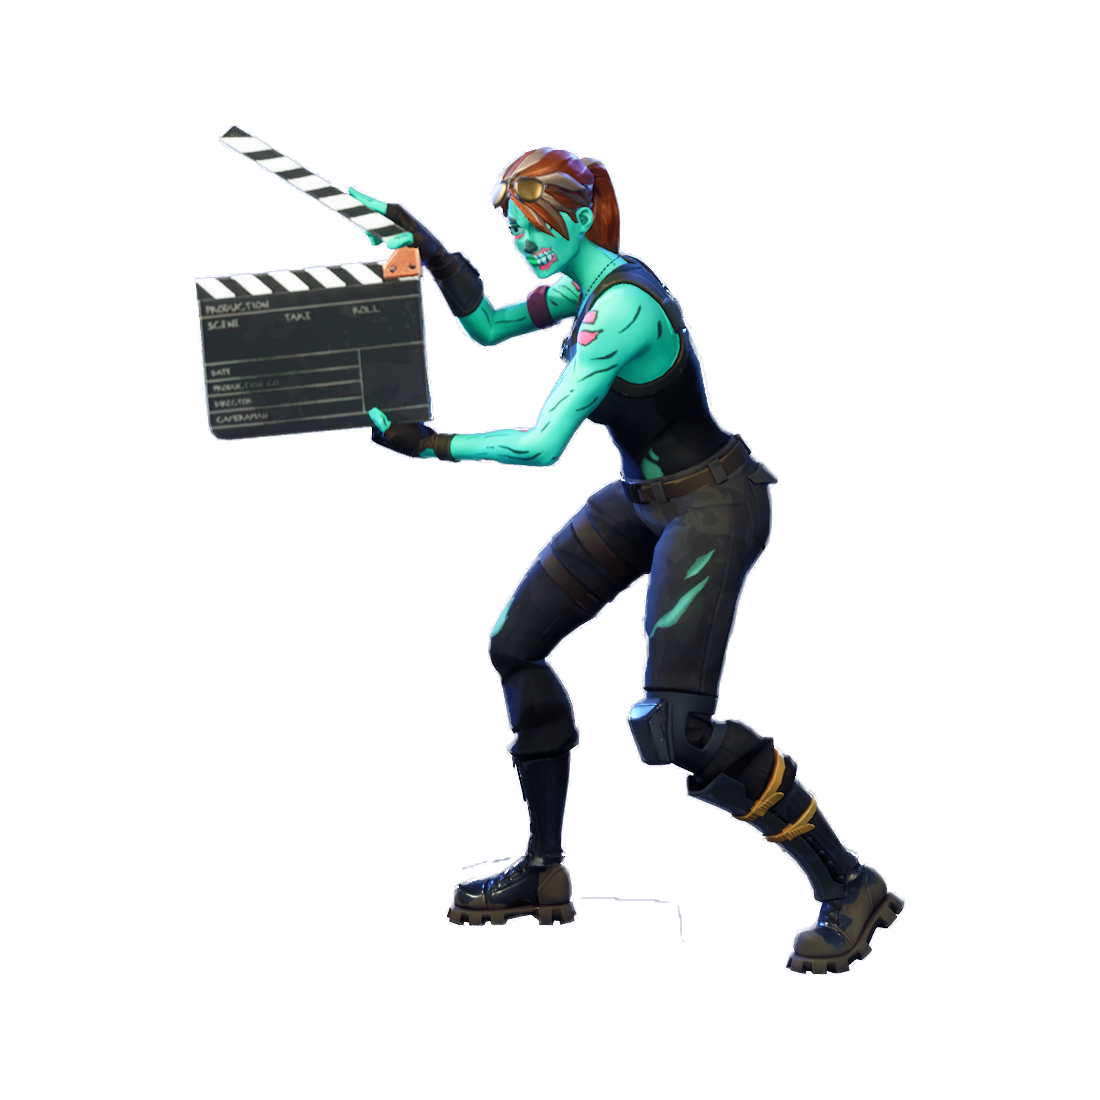 Take the l fortnite png. Uncommon emote cosmetic